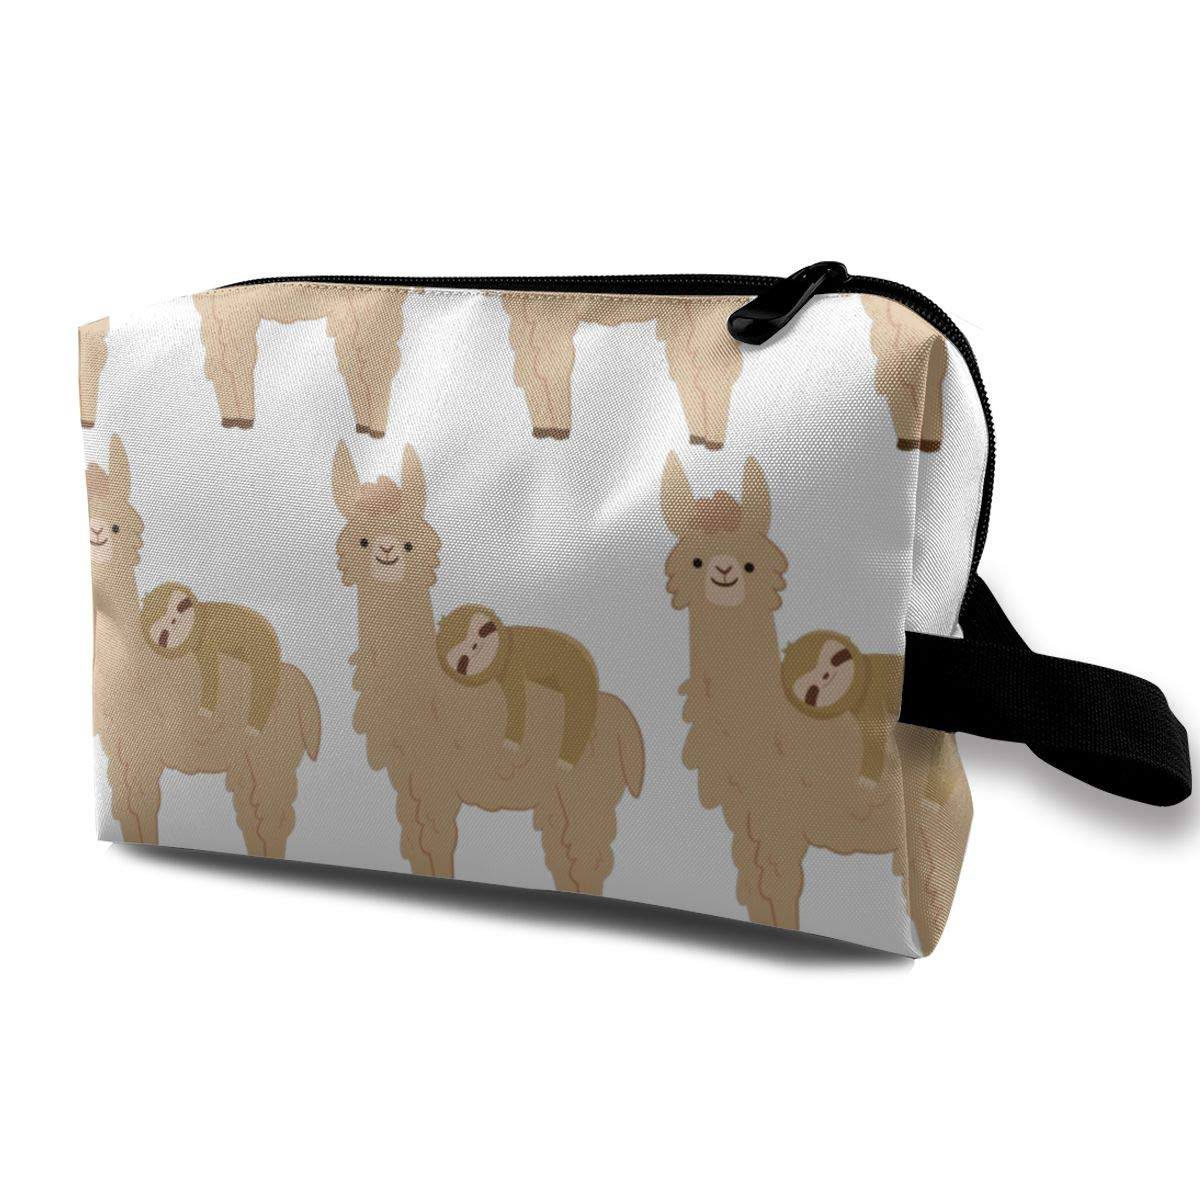 Travel Toiletry Bag for Men Women Toiletries Makeup Bag Cosmetic Organizer Shaving Bag for Business Trip (Sloth Laying On A Llama)